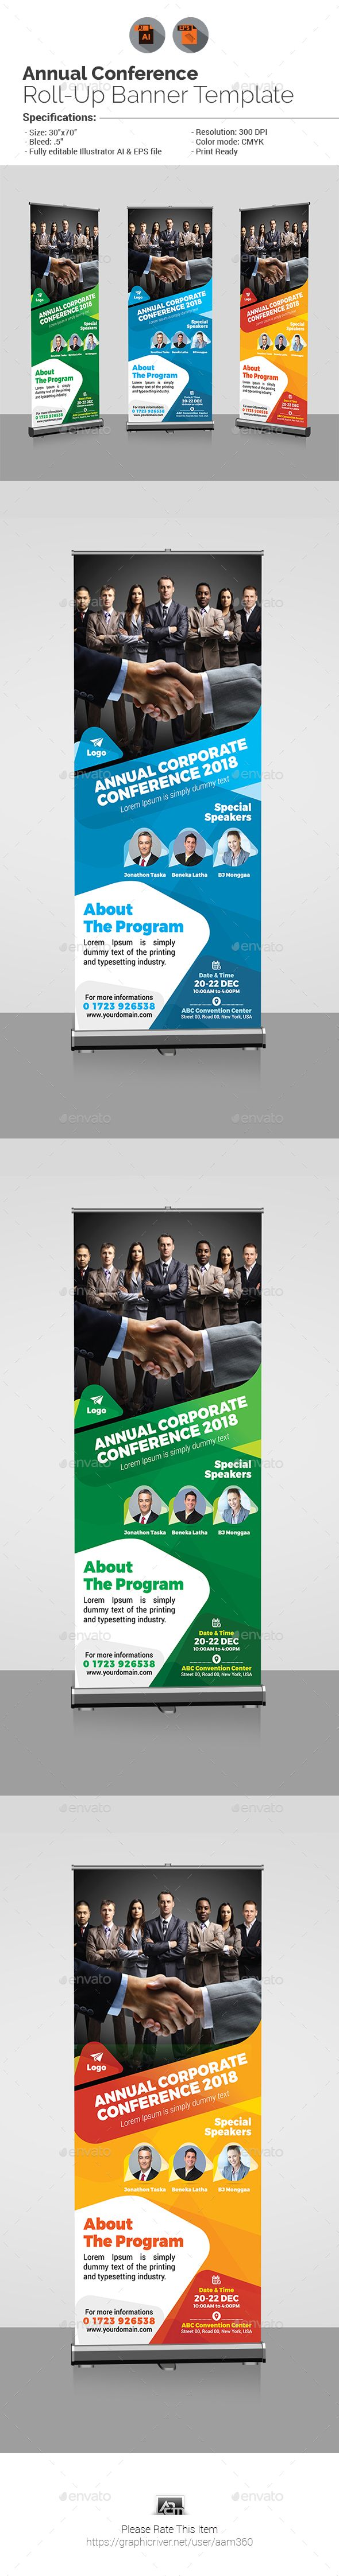 Annual Corporate Conference Roll-up Banner by aam360 Similar Templates:INFORMATI...